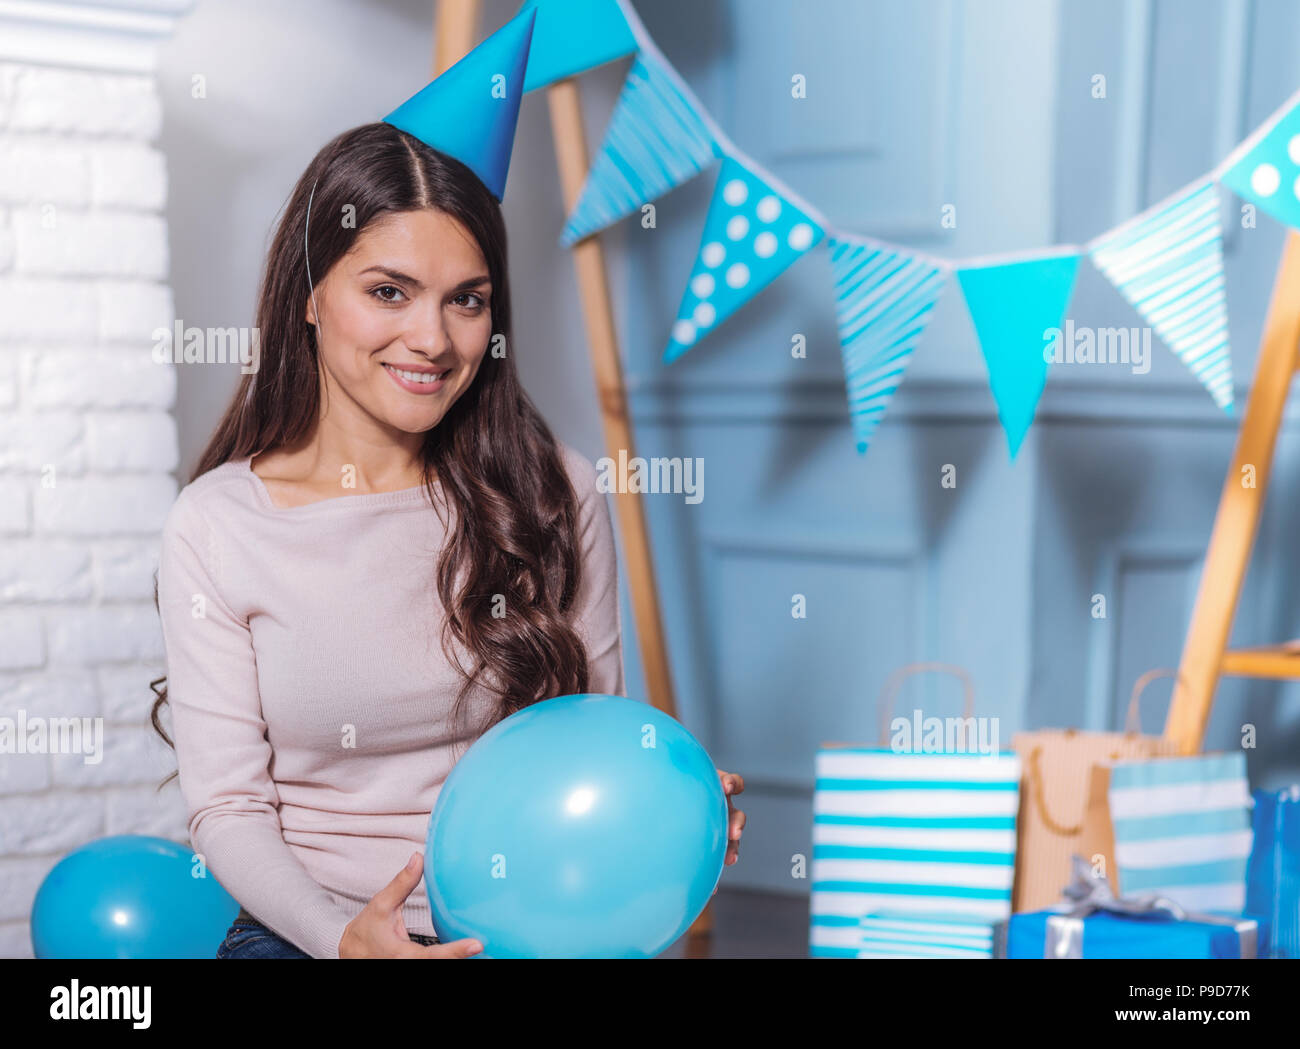 Cheerful girl having birthday party - Stock Image